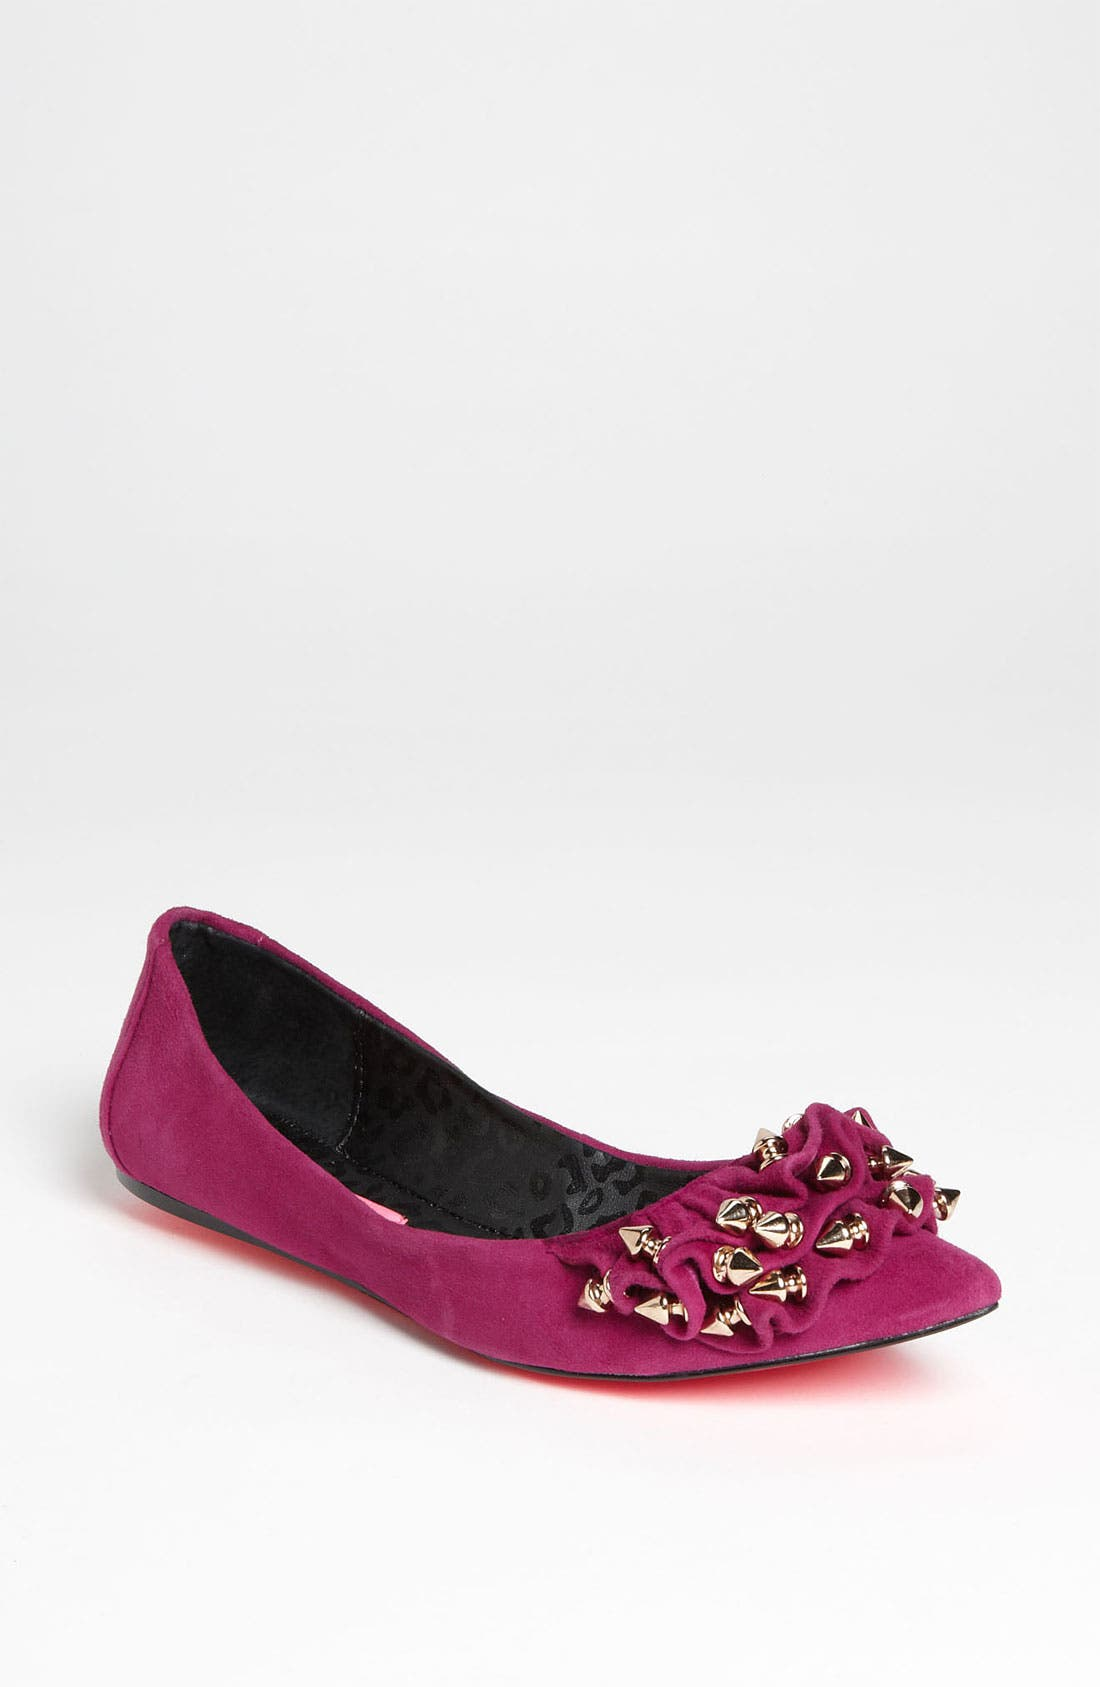 Alternate Image 1 Selected - Betsey Johnson 'Evve' Flat